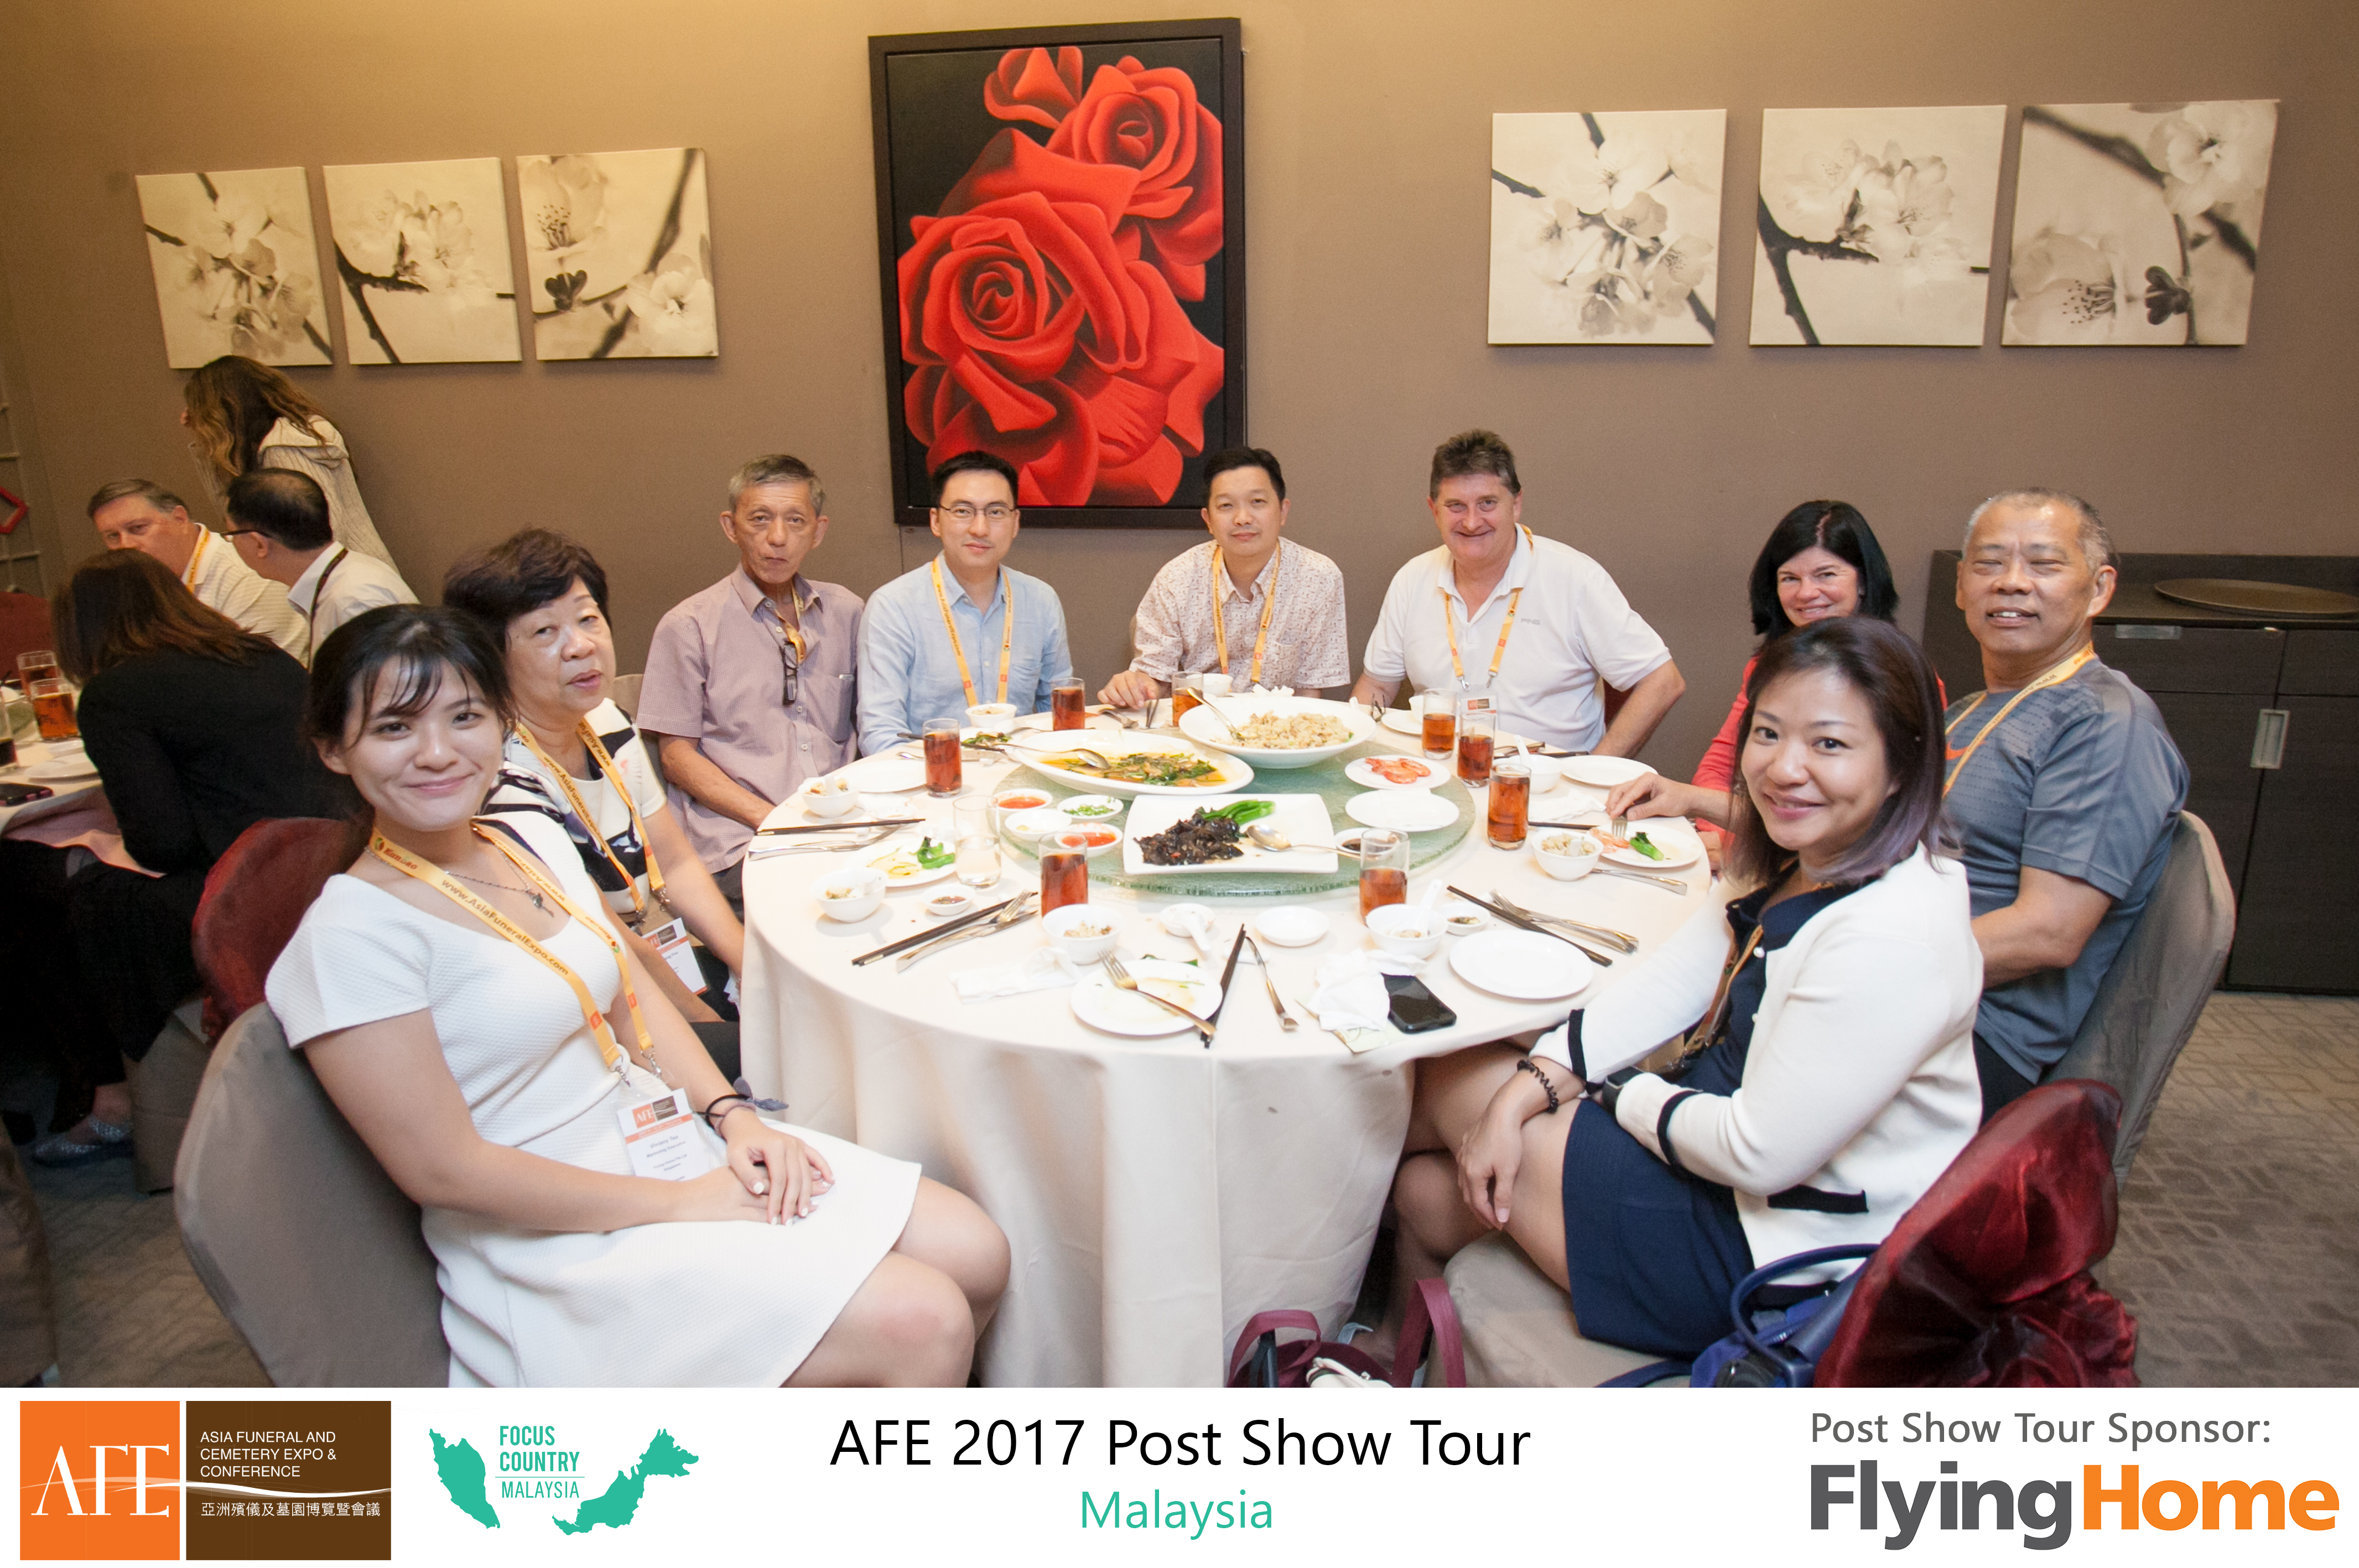 AFE Post Show Tour 2017 Day 1 - 24